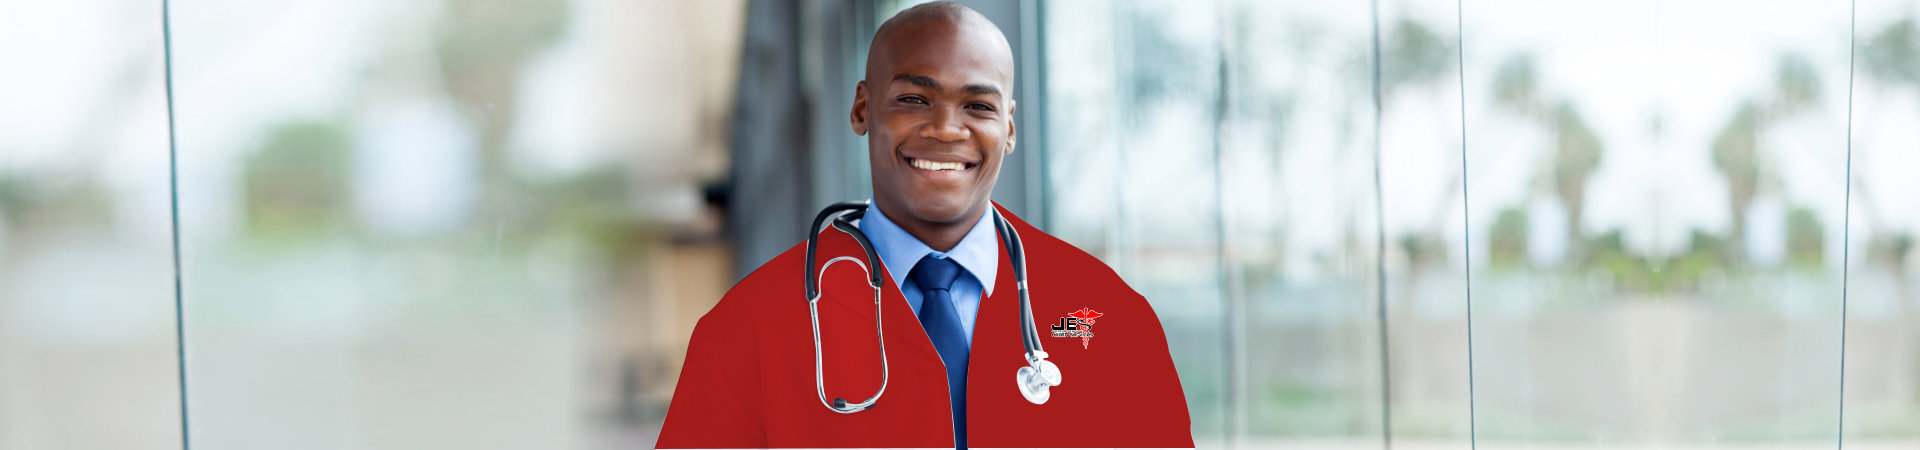 smiling male doctor wearing red uniform